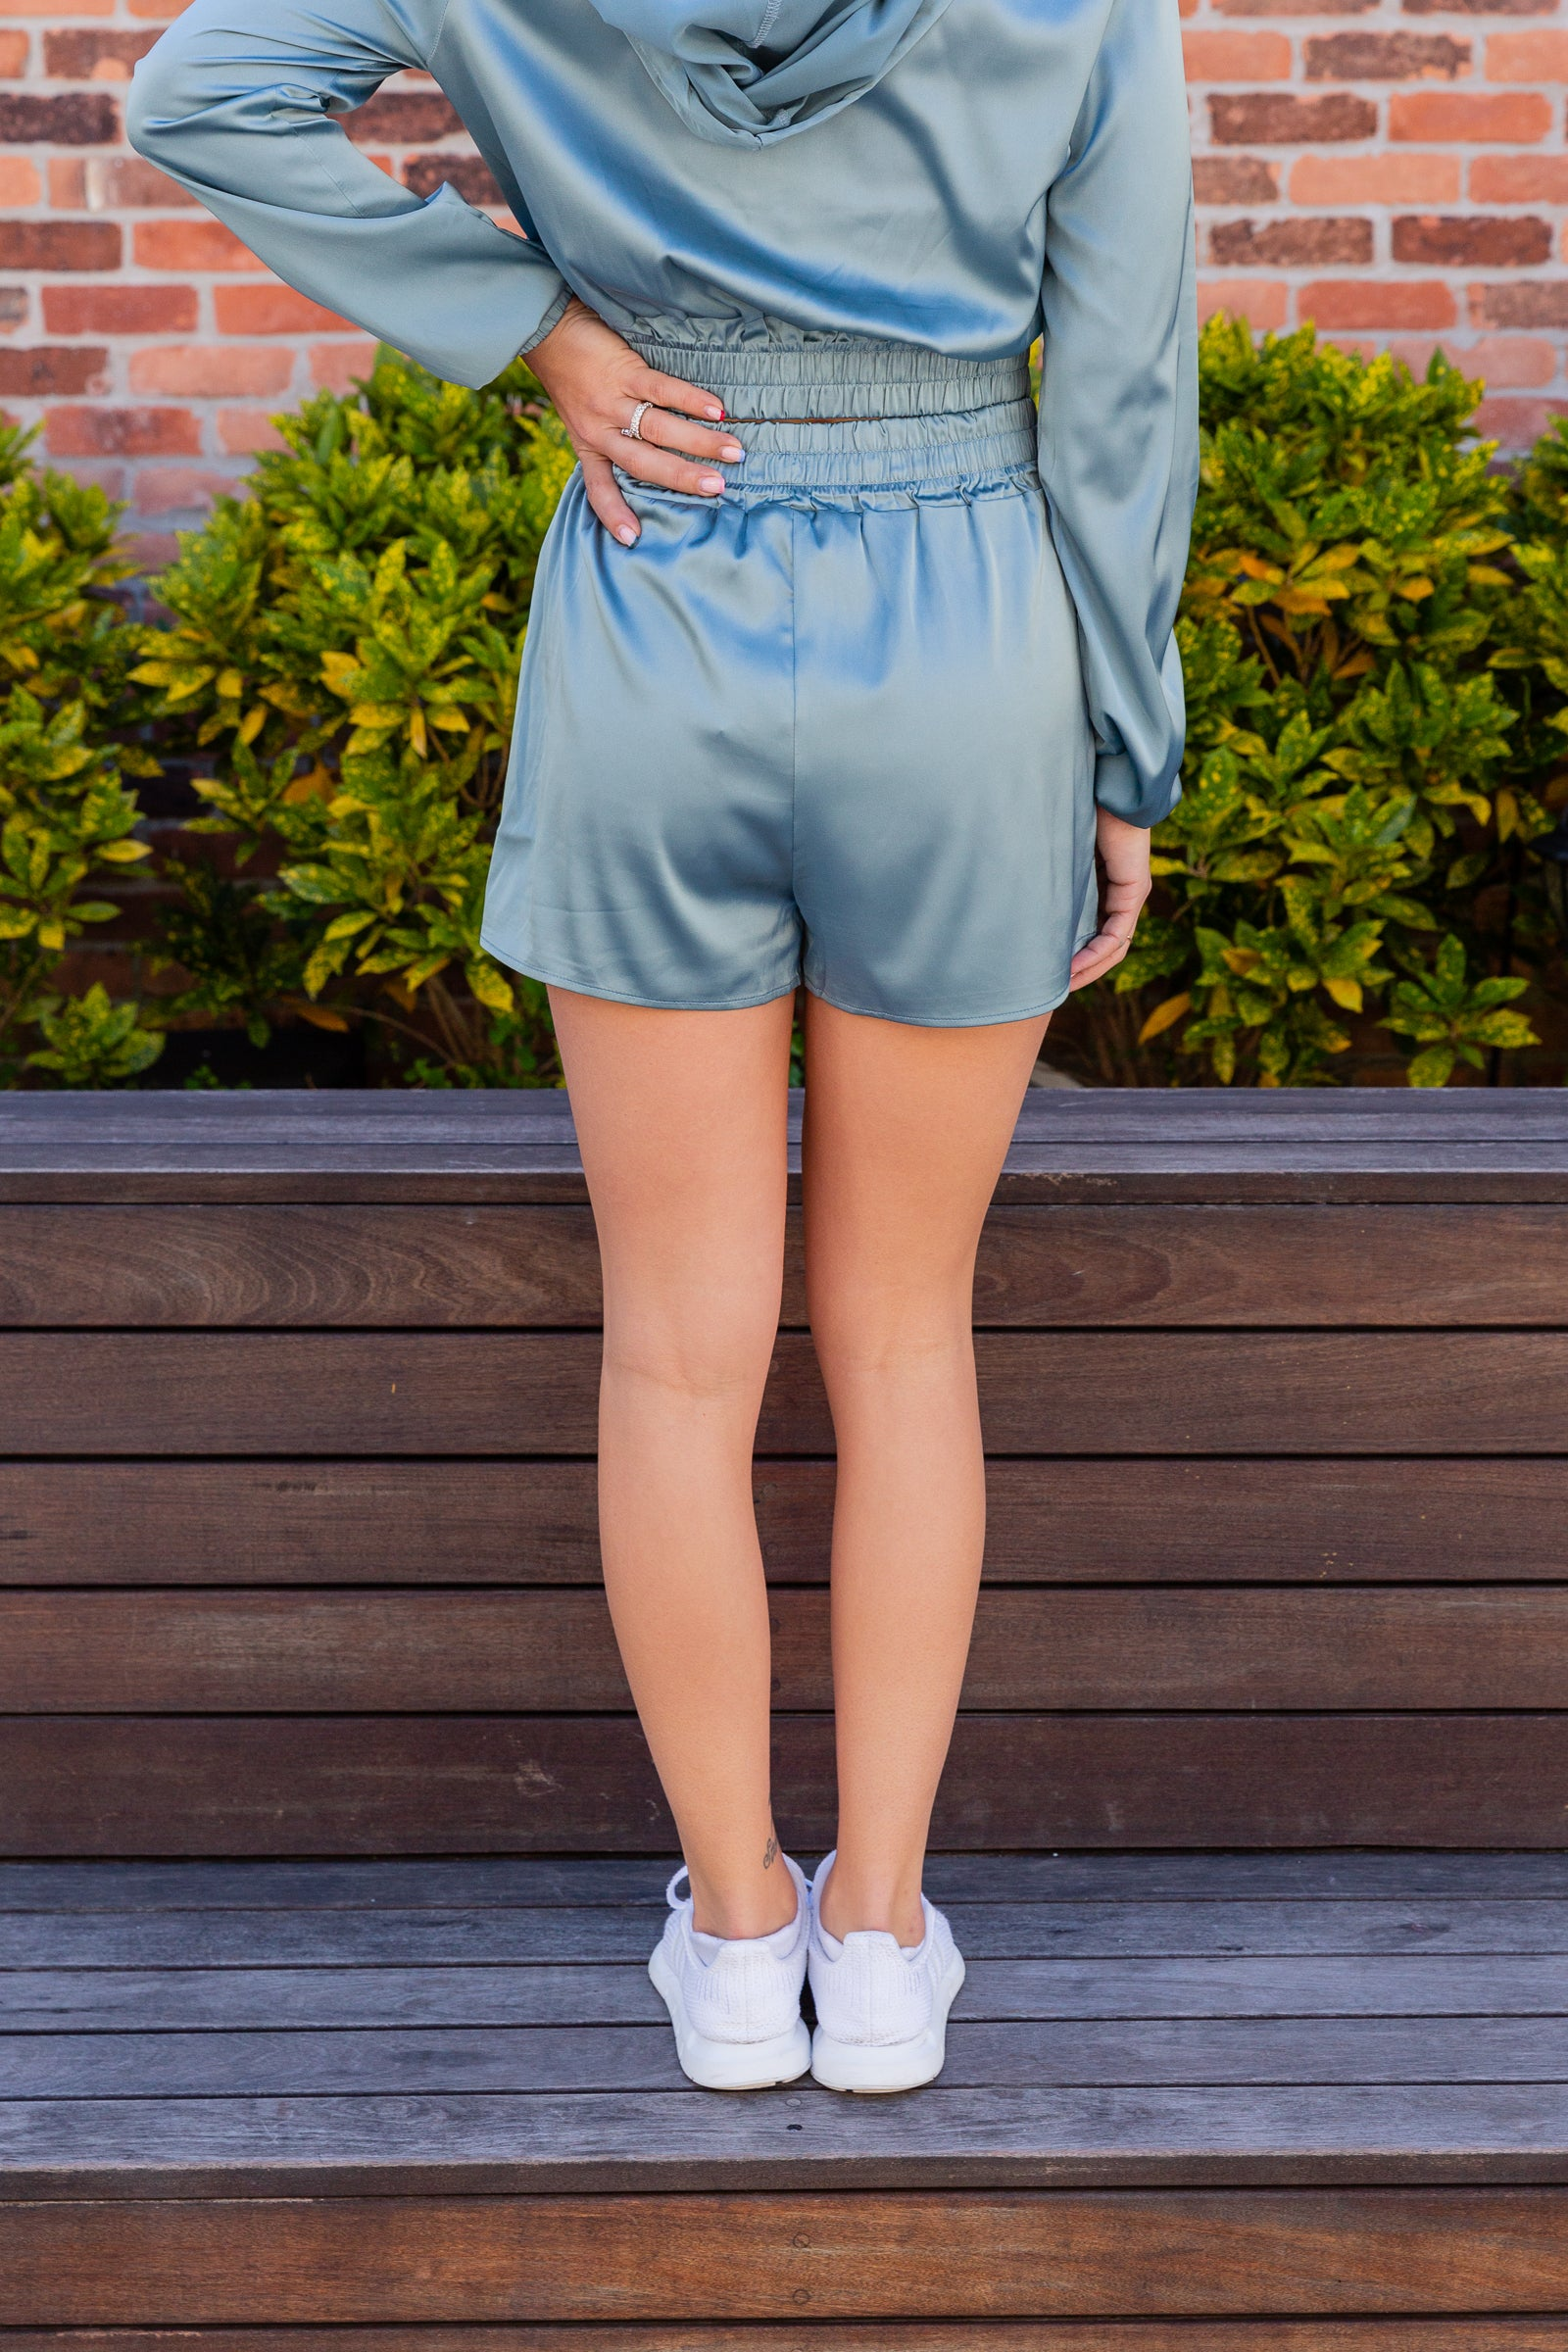 These satiny bottoms have an elastic waistband leading to side pockets on relaxed and comfortable shorts.